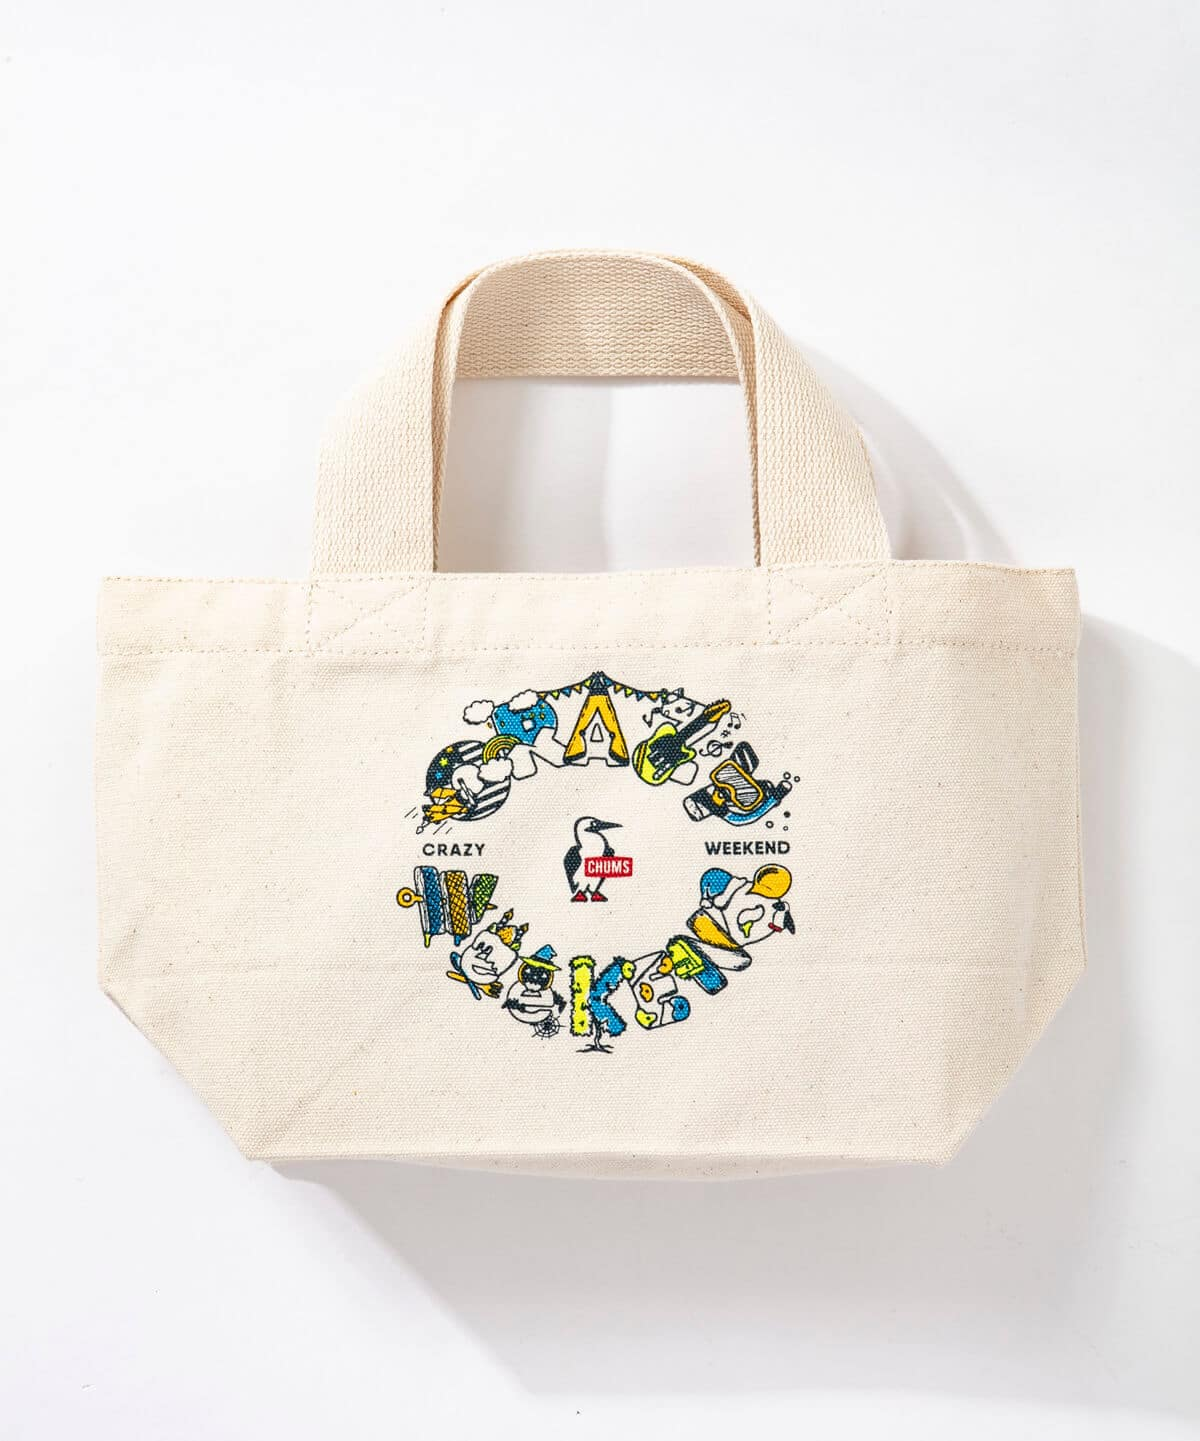 Crazy Weekend Mini Canvas Tote(クレイジーウィークエンドミニキャンバストート(トートバッグ))